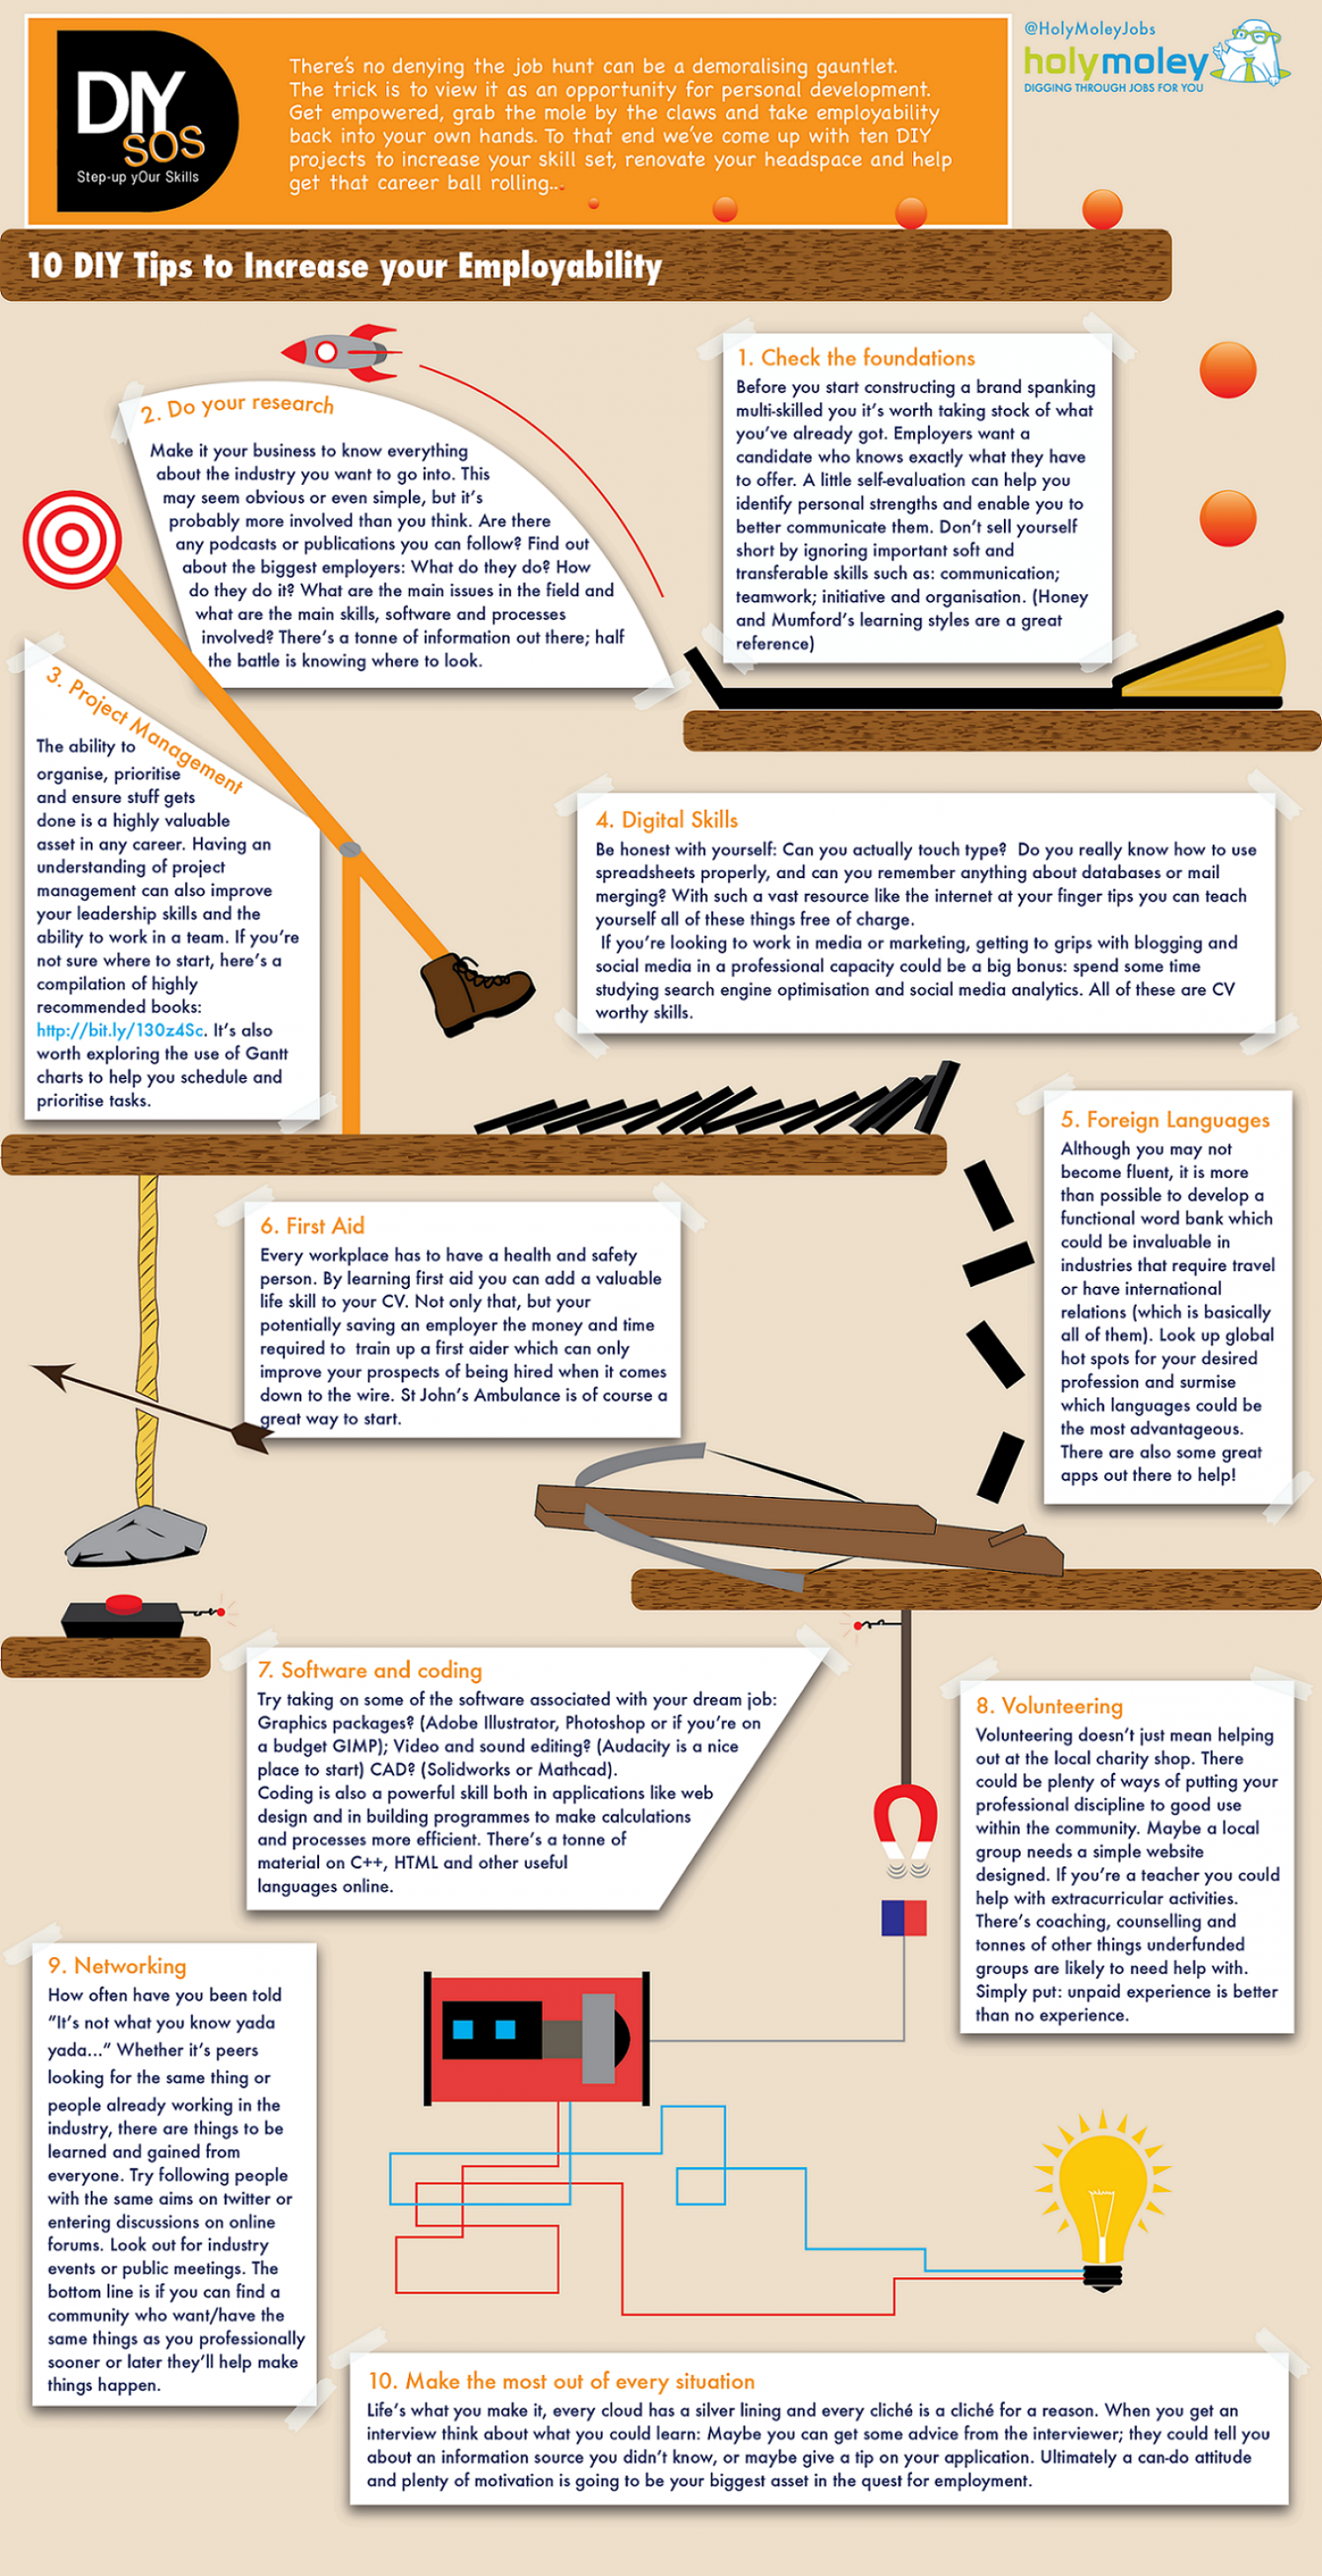 10 DIY Tips to Increase Your Employability Infographic